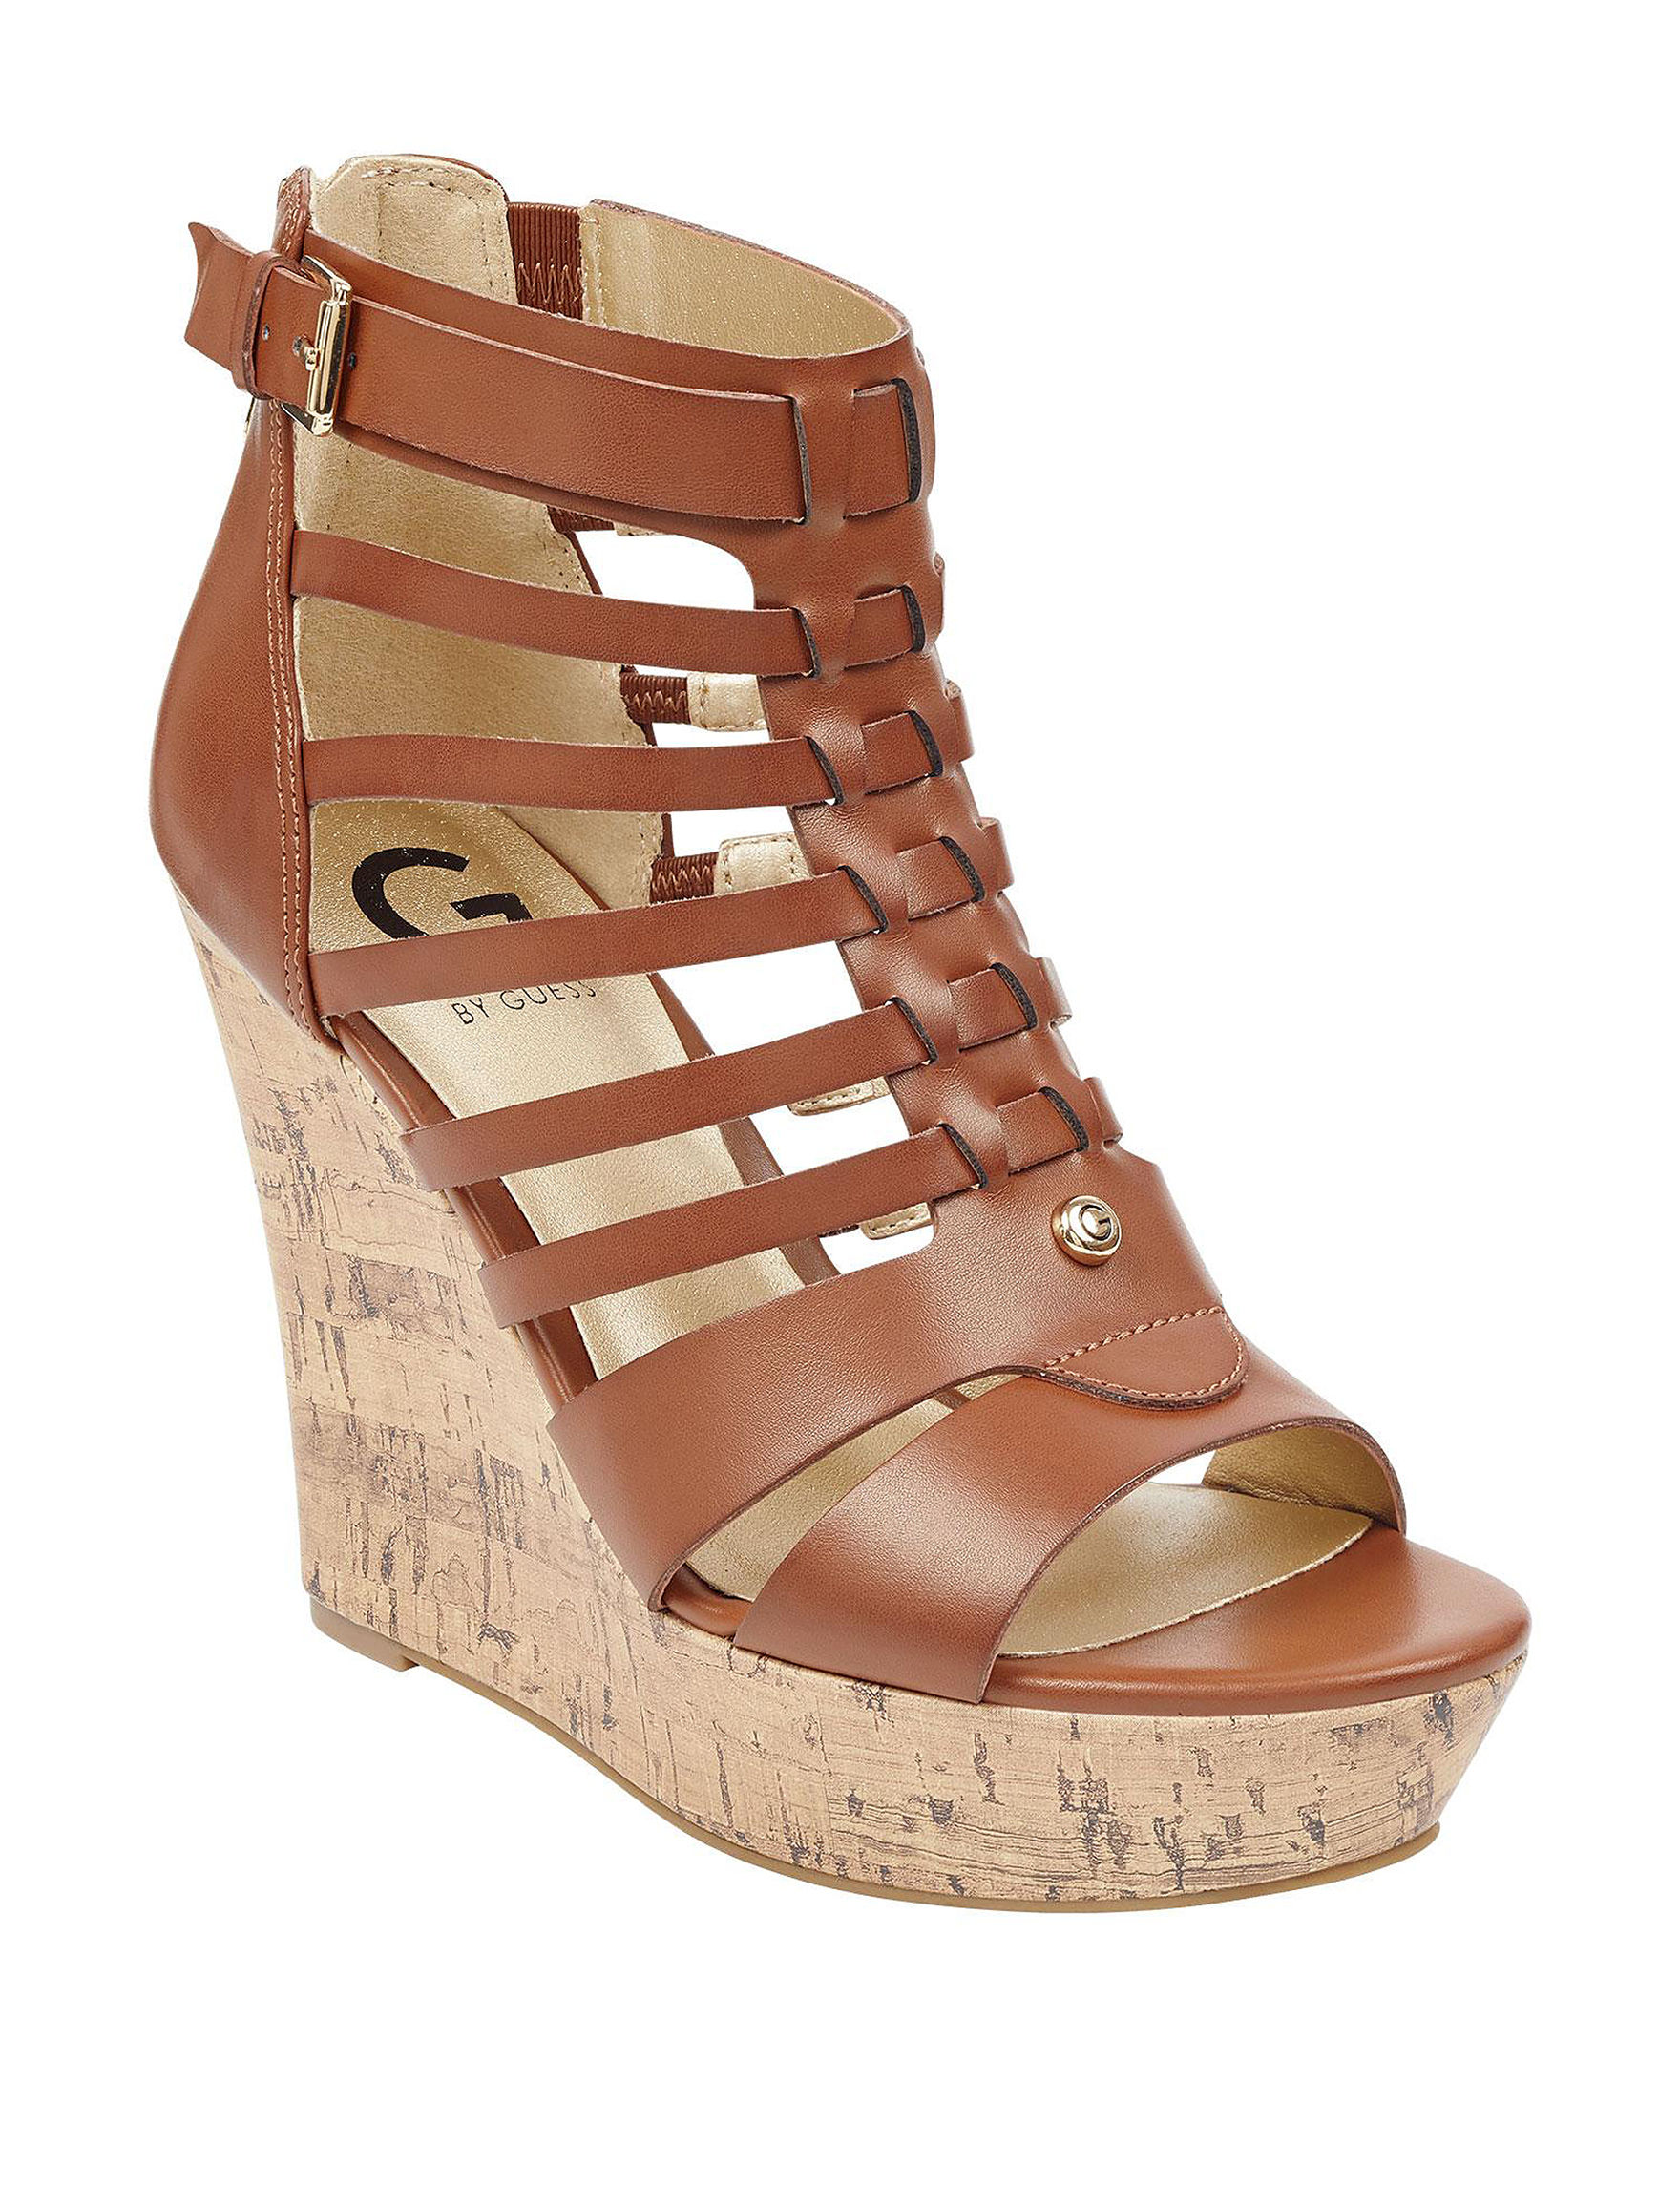 G by Guess Brown Platform Wedge Sandals